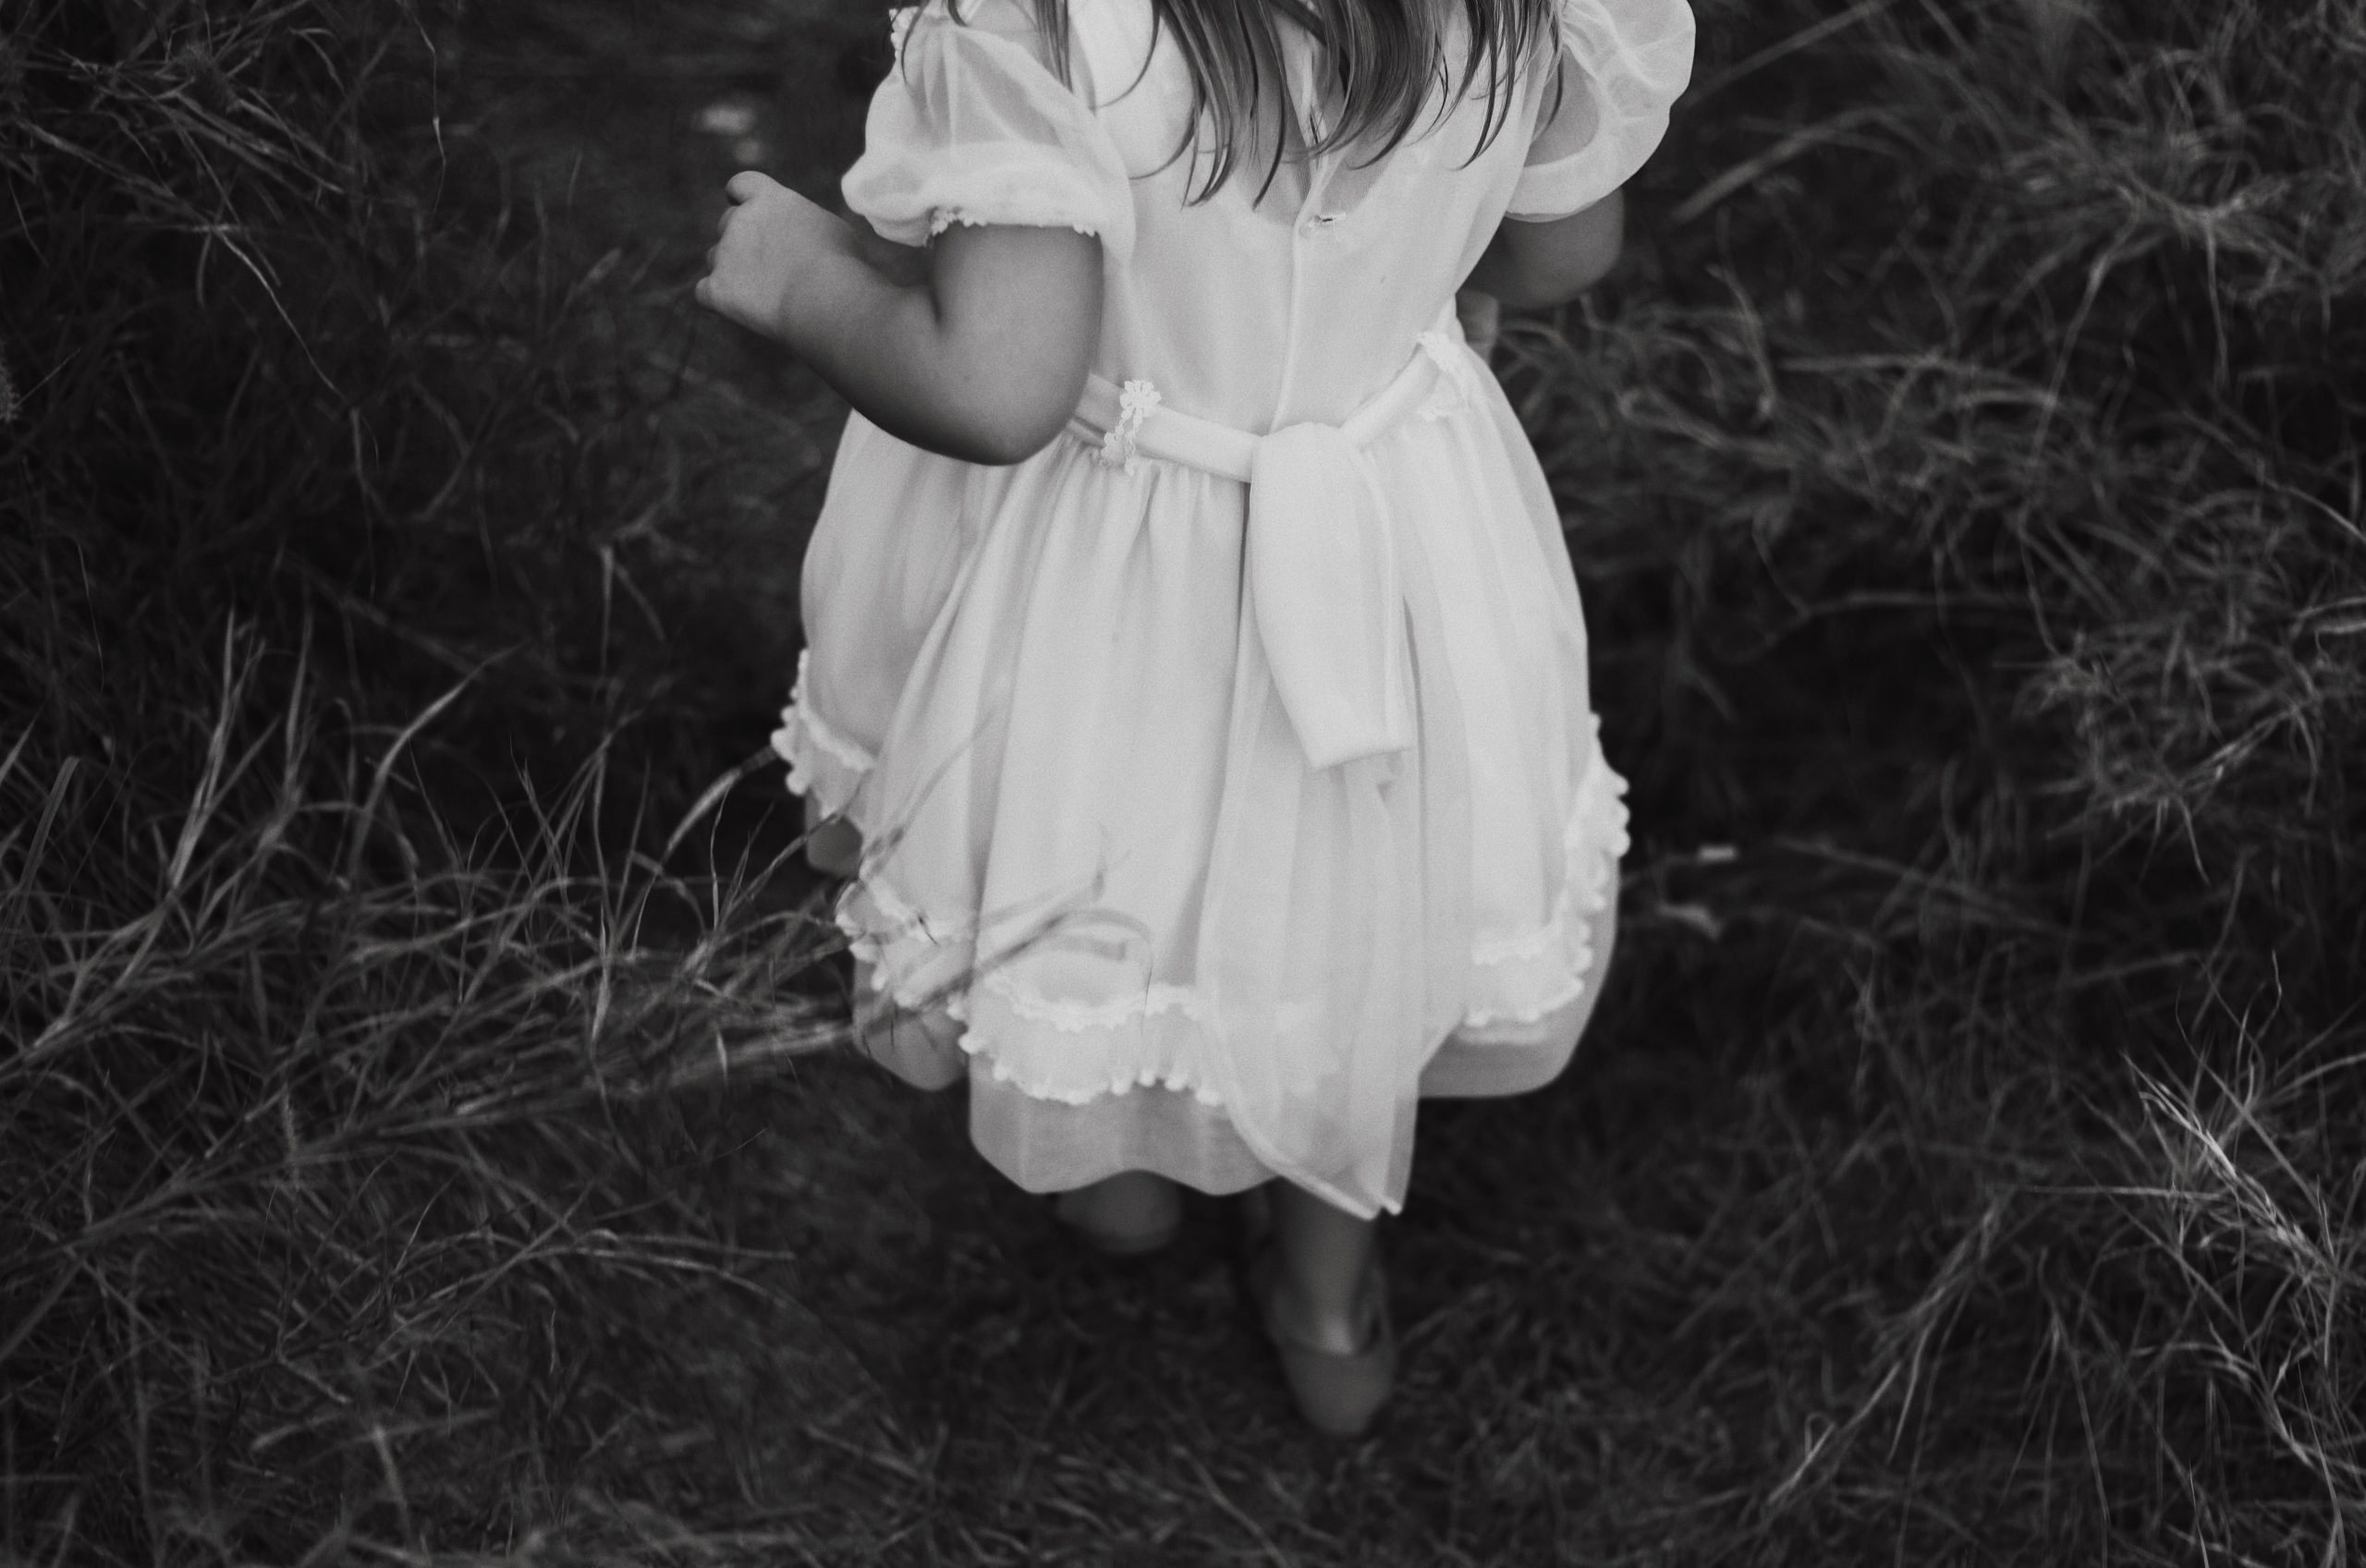 A little child in a white dress